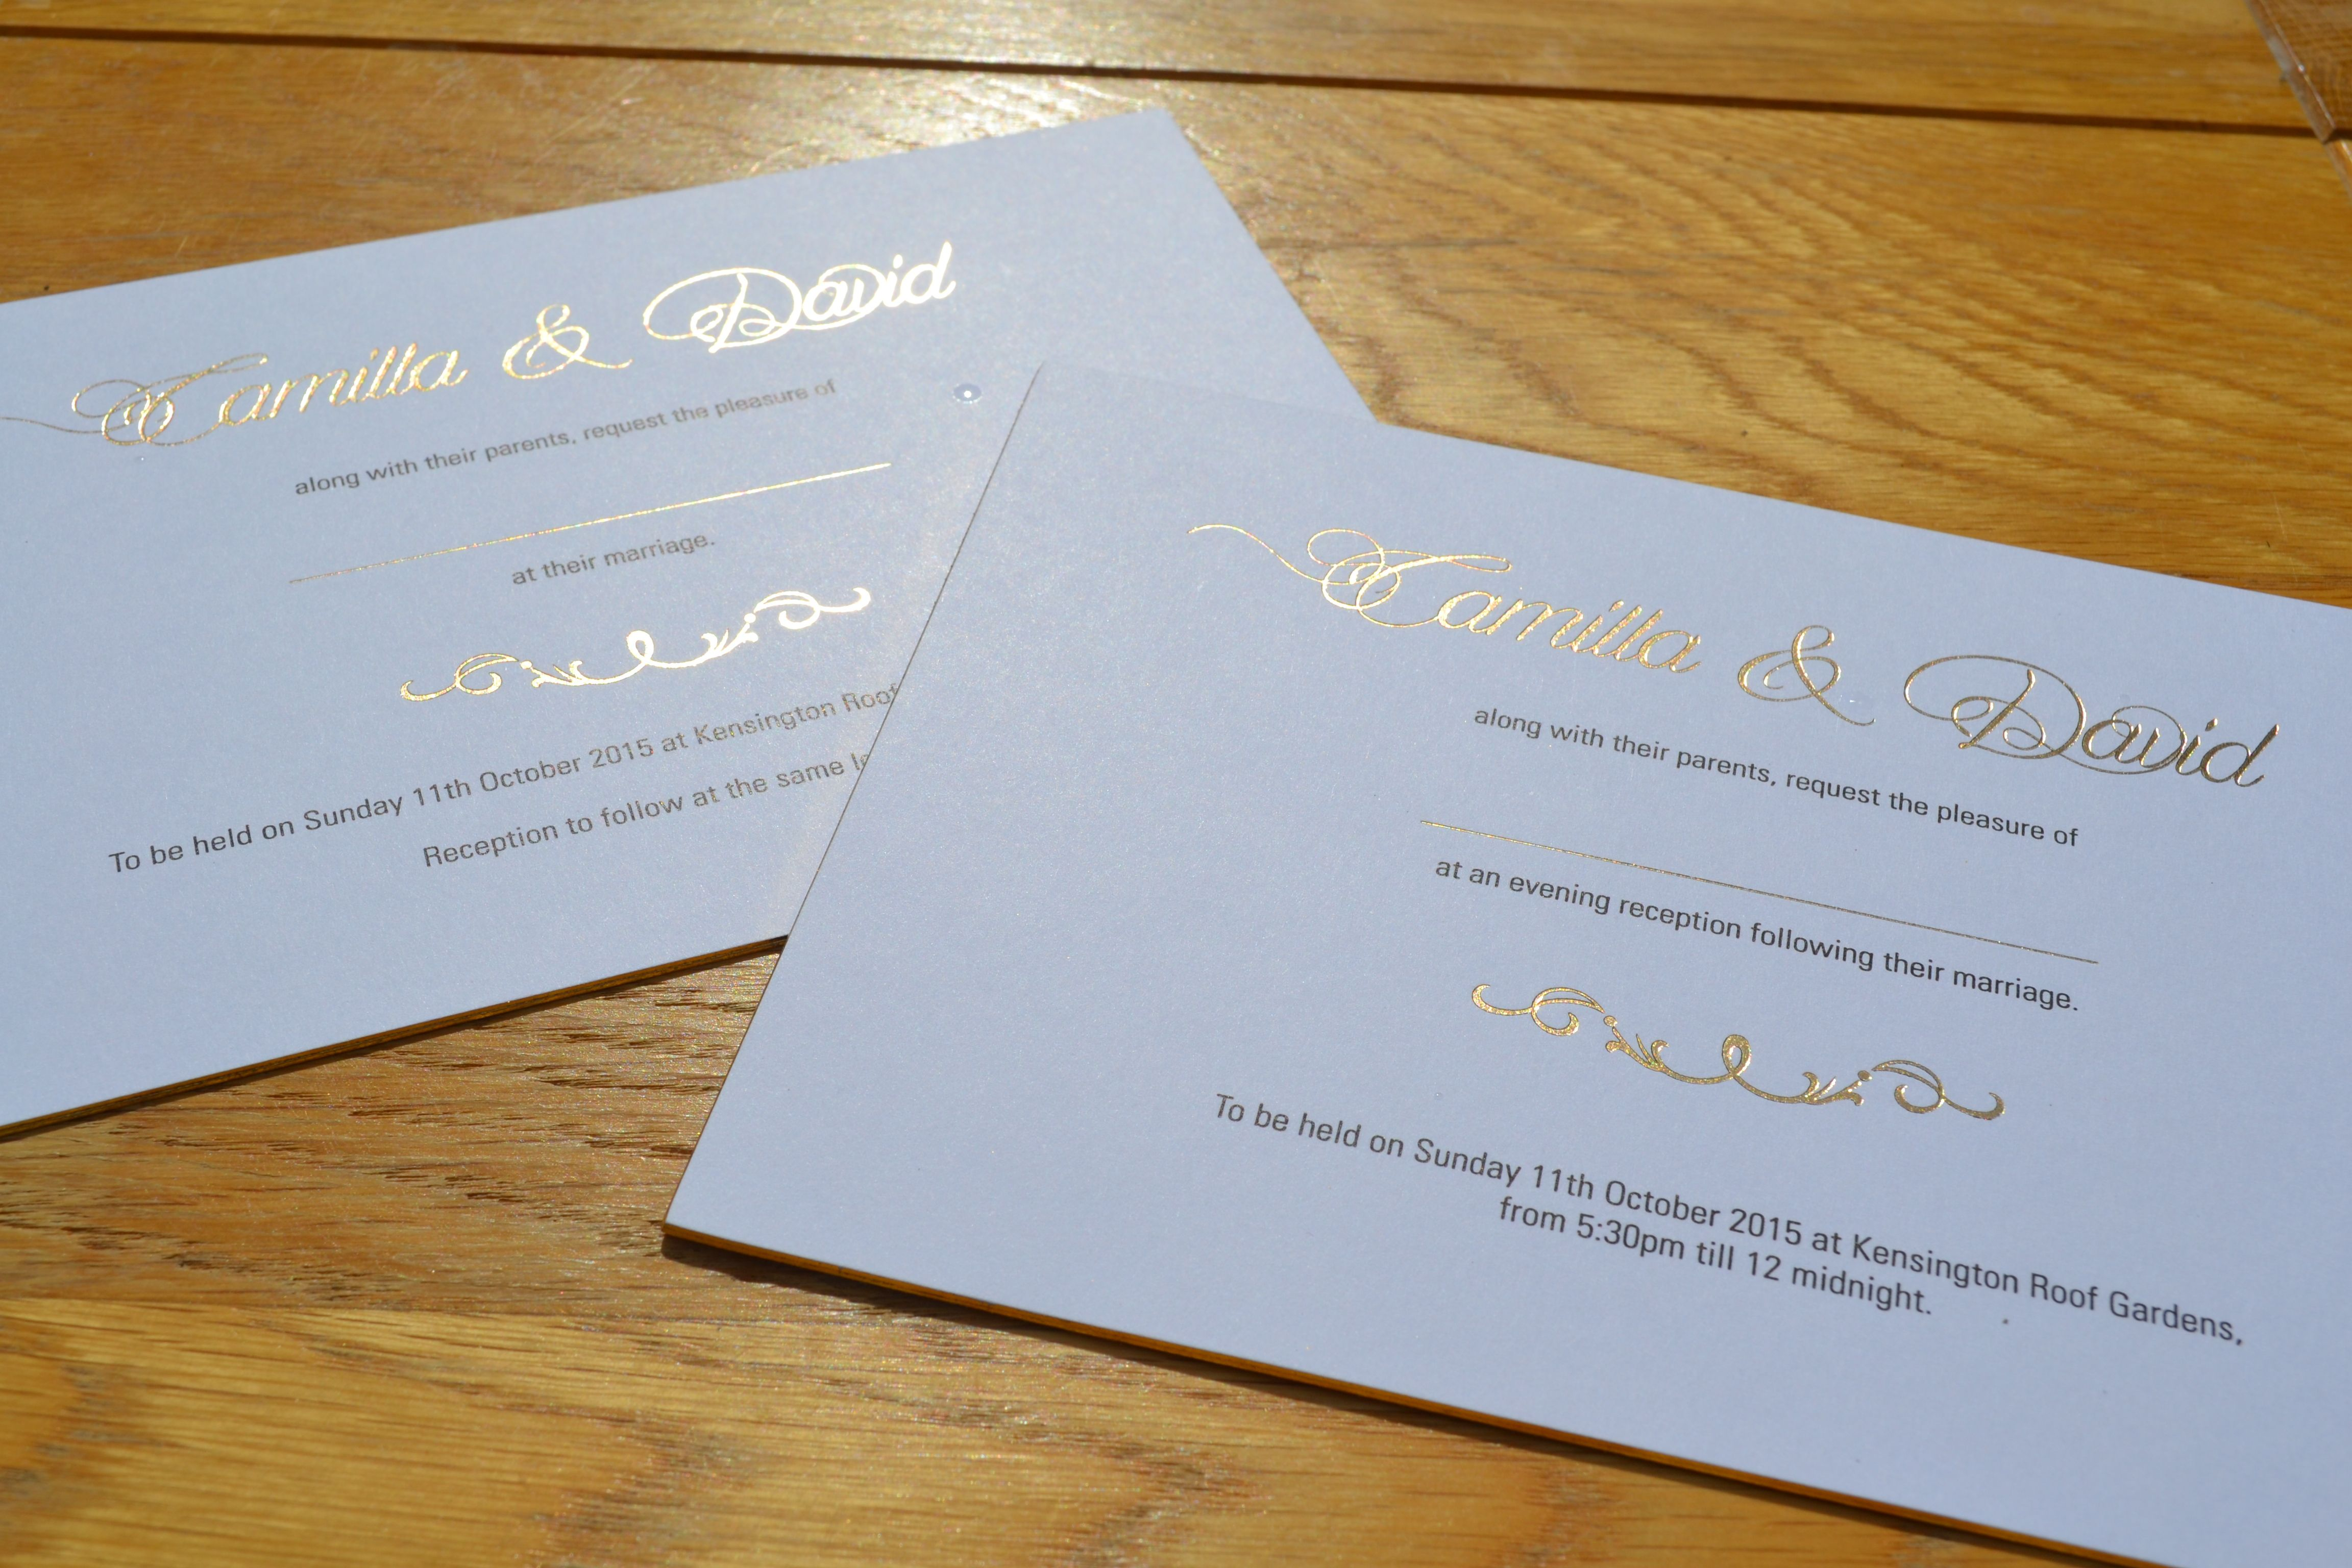 Wedding Invitations Printed In Gold Foil Black Litho Flat Print On Gilt Edged Cards